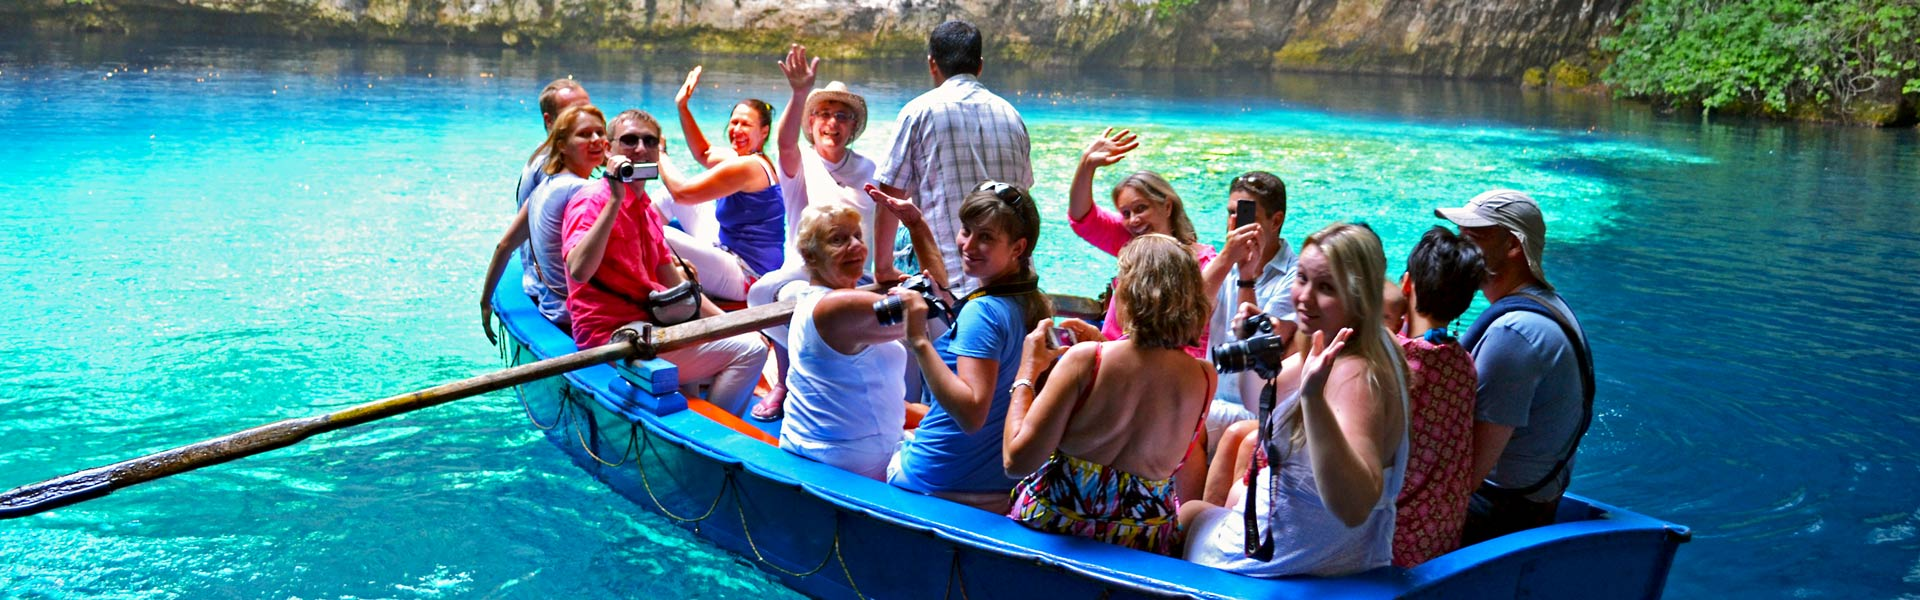 VIP Kefalonia island tour excursion